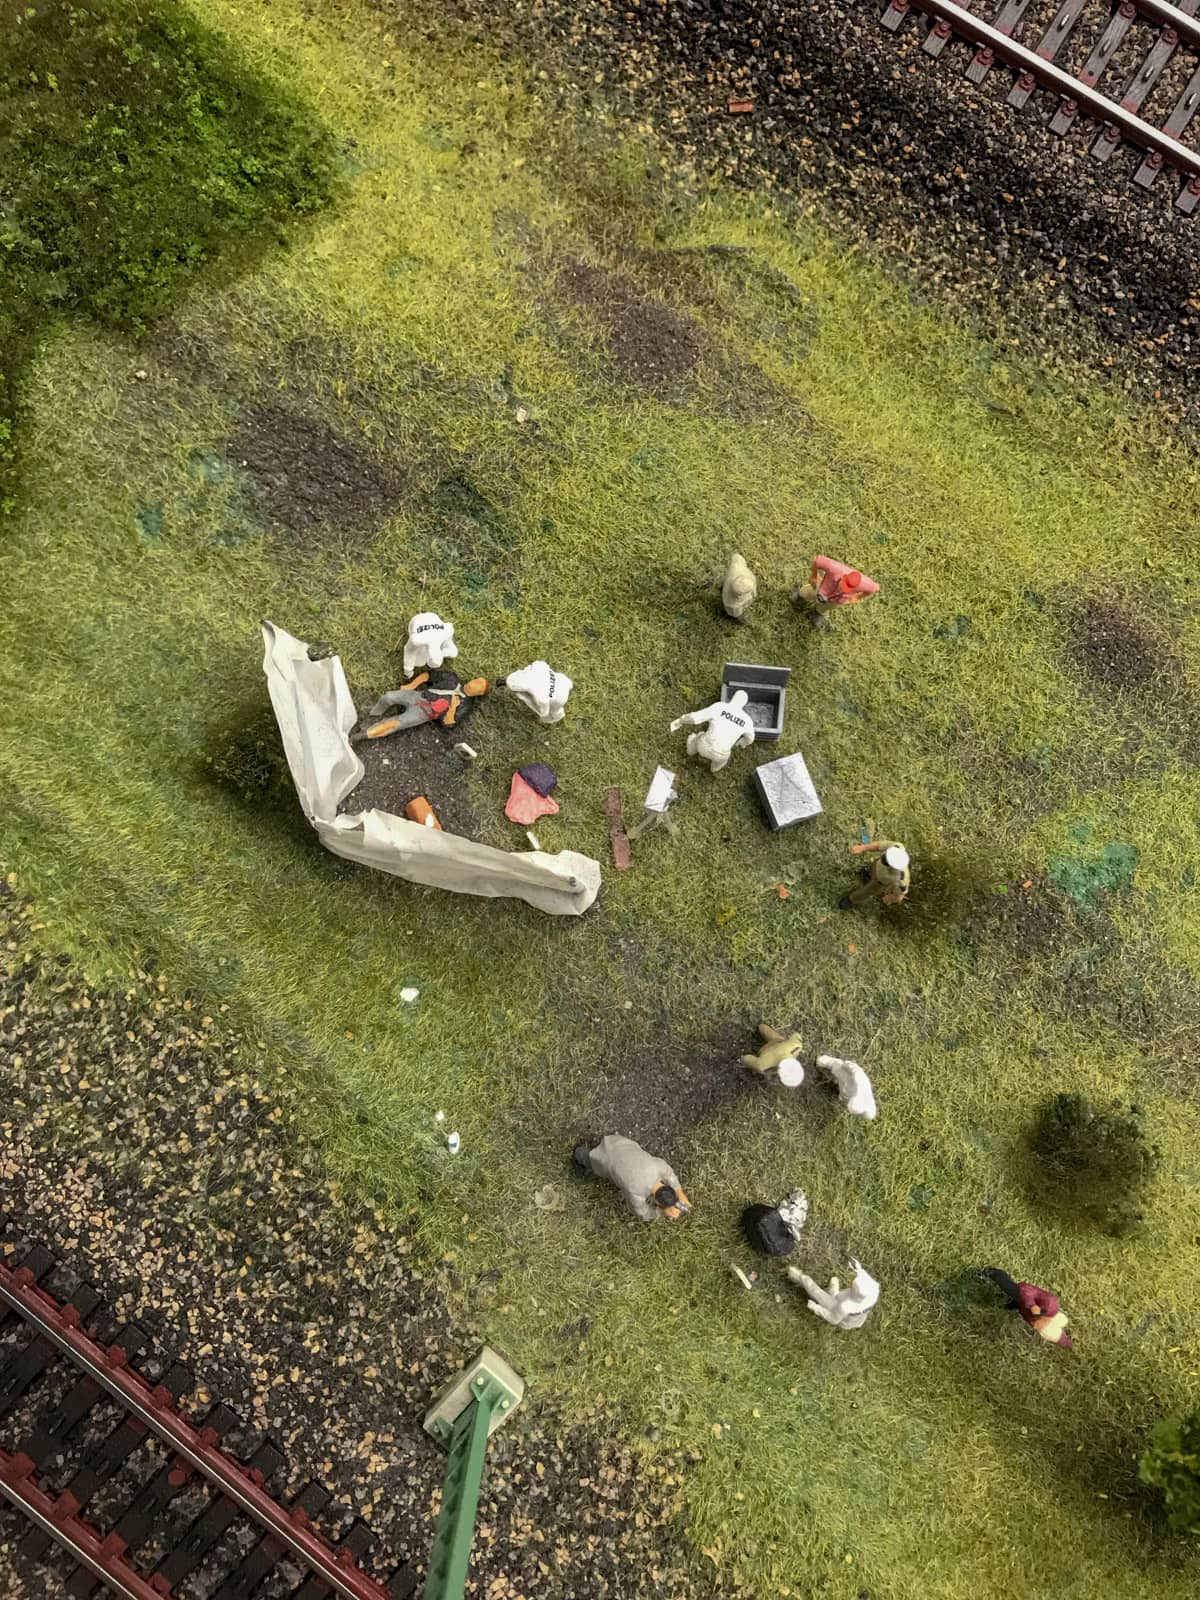 A birds-eye view of figurines near railtracks, assembled with props like a murder scene